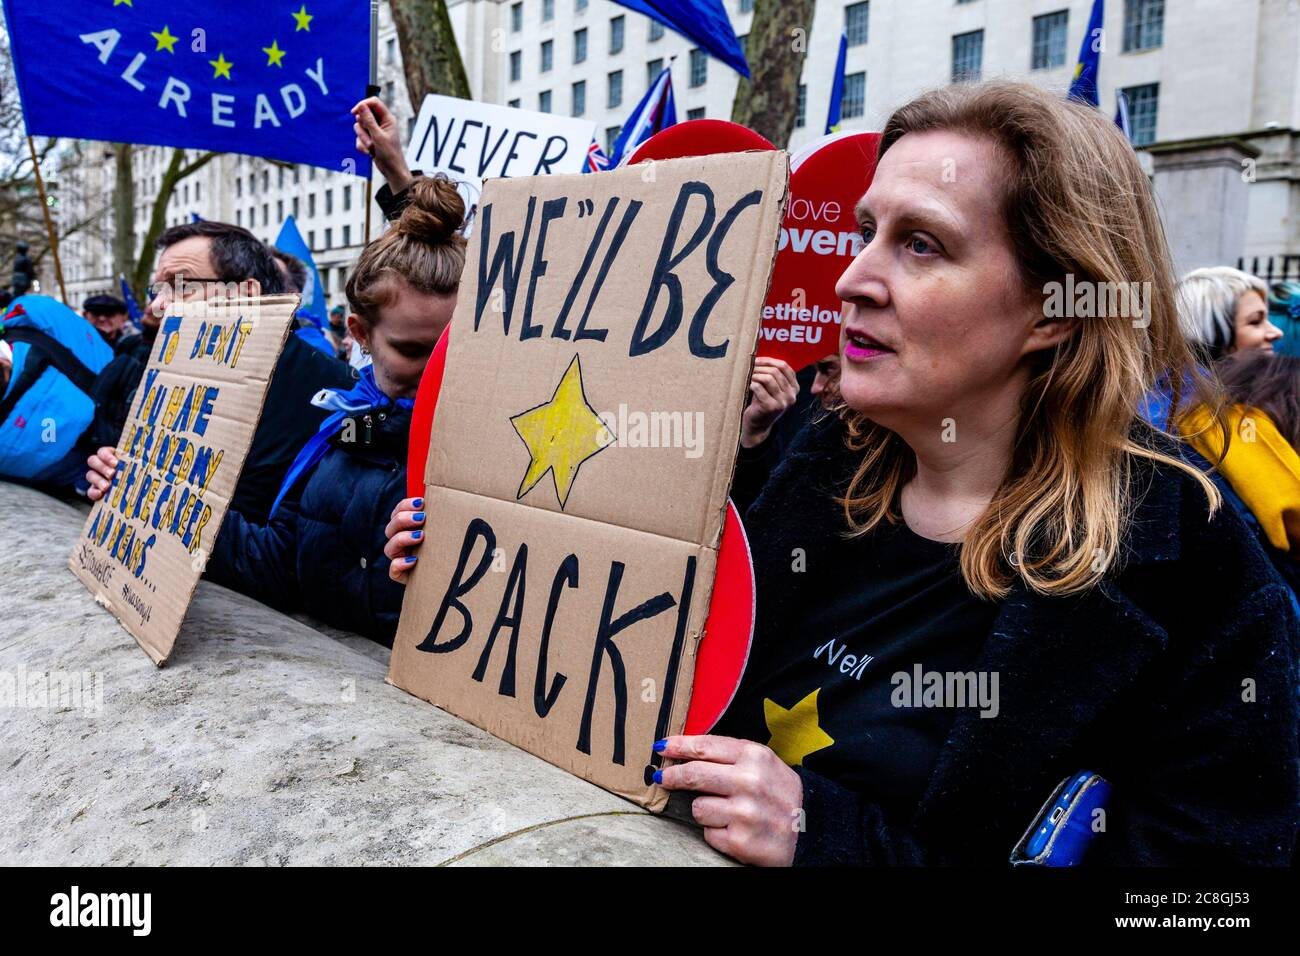 Pro EU supporters protest near Parliament Square on the day Britain is due to officially leave the EU, Whitehall, London, UK - Stock Photo